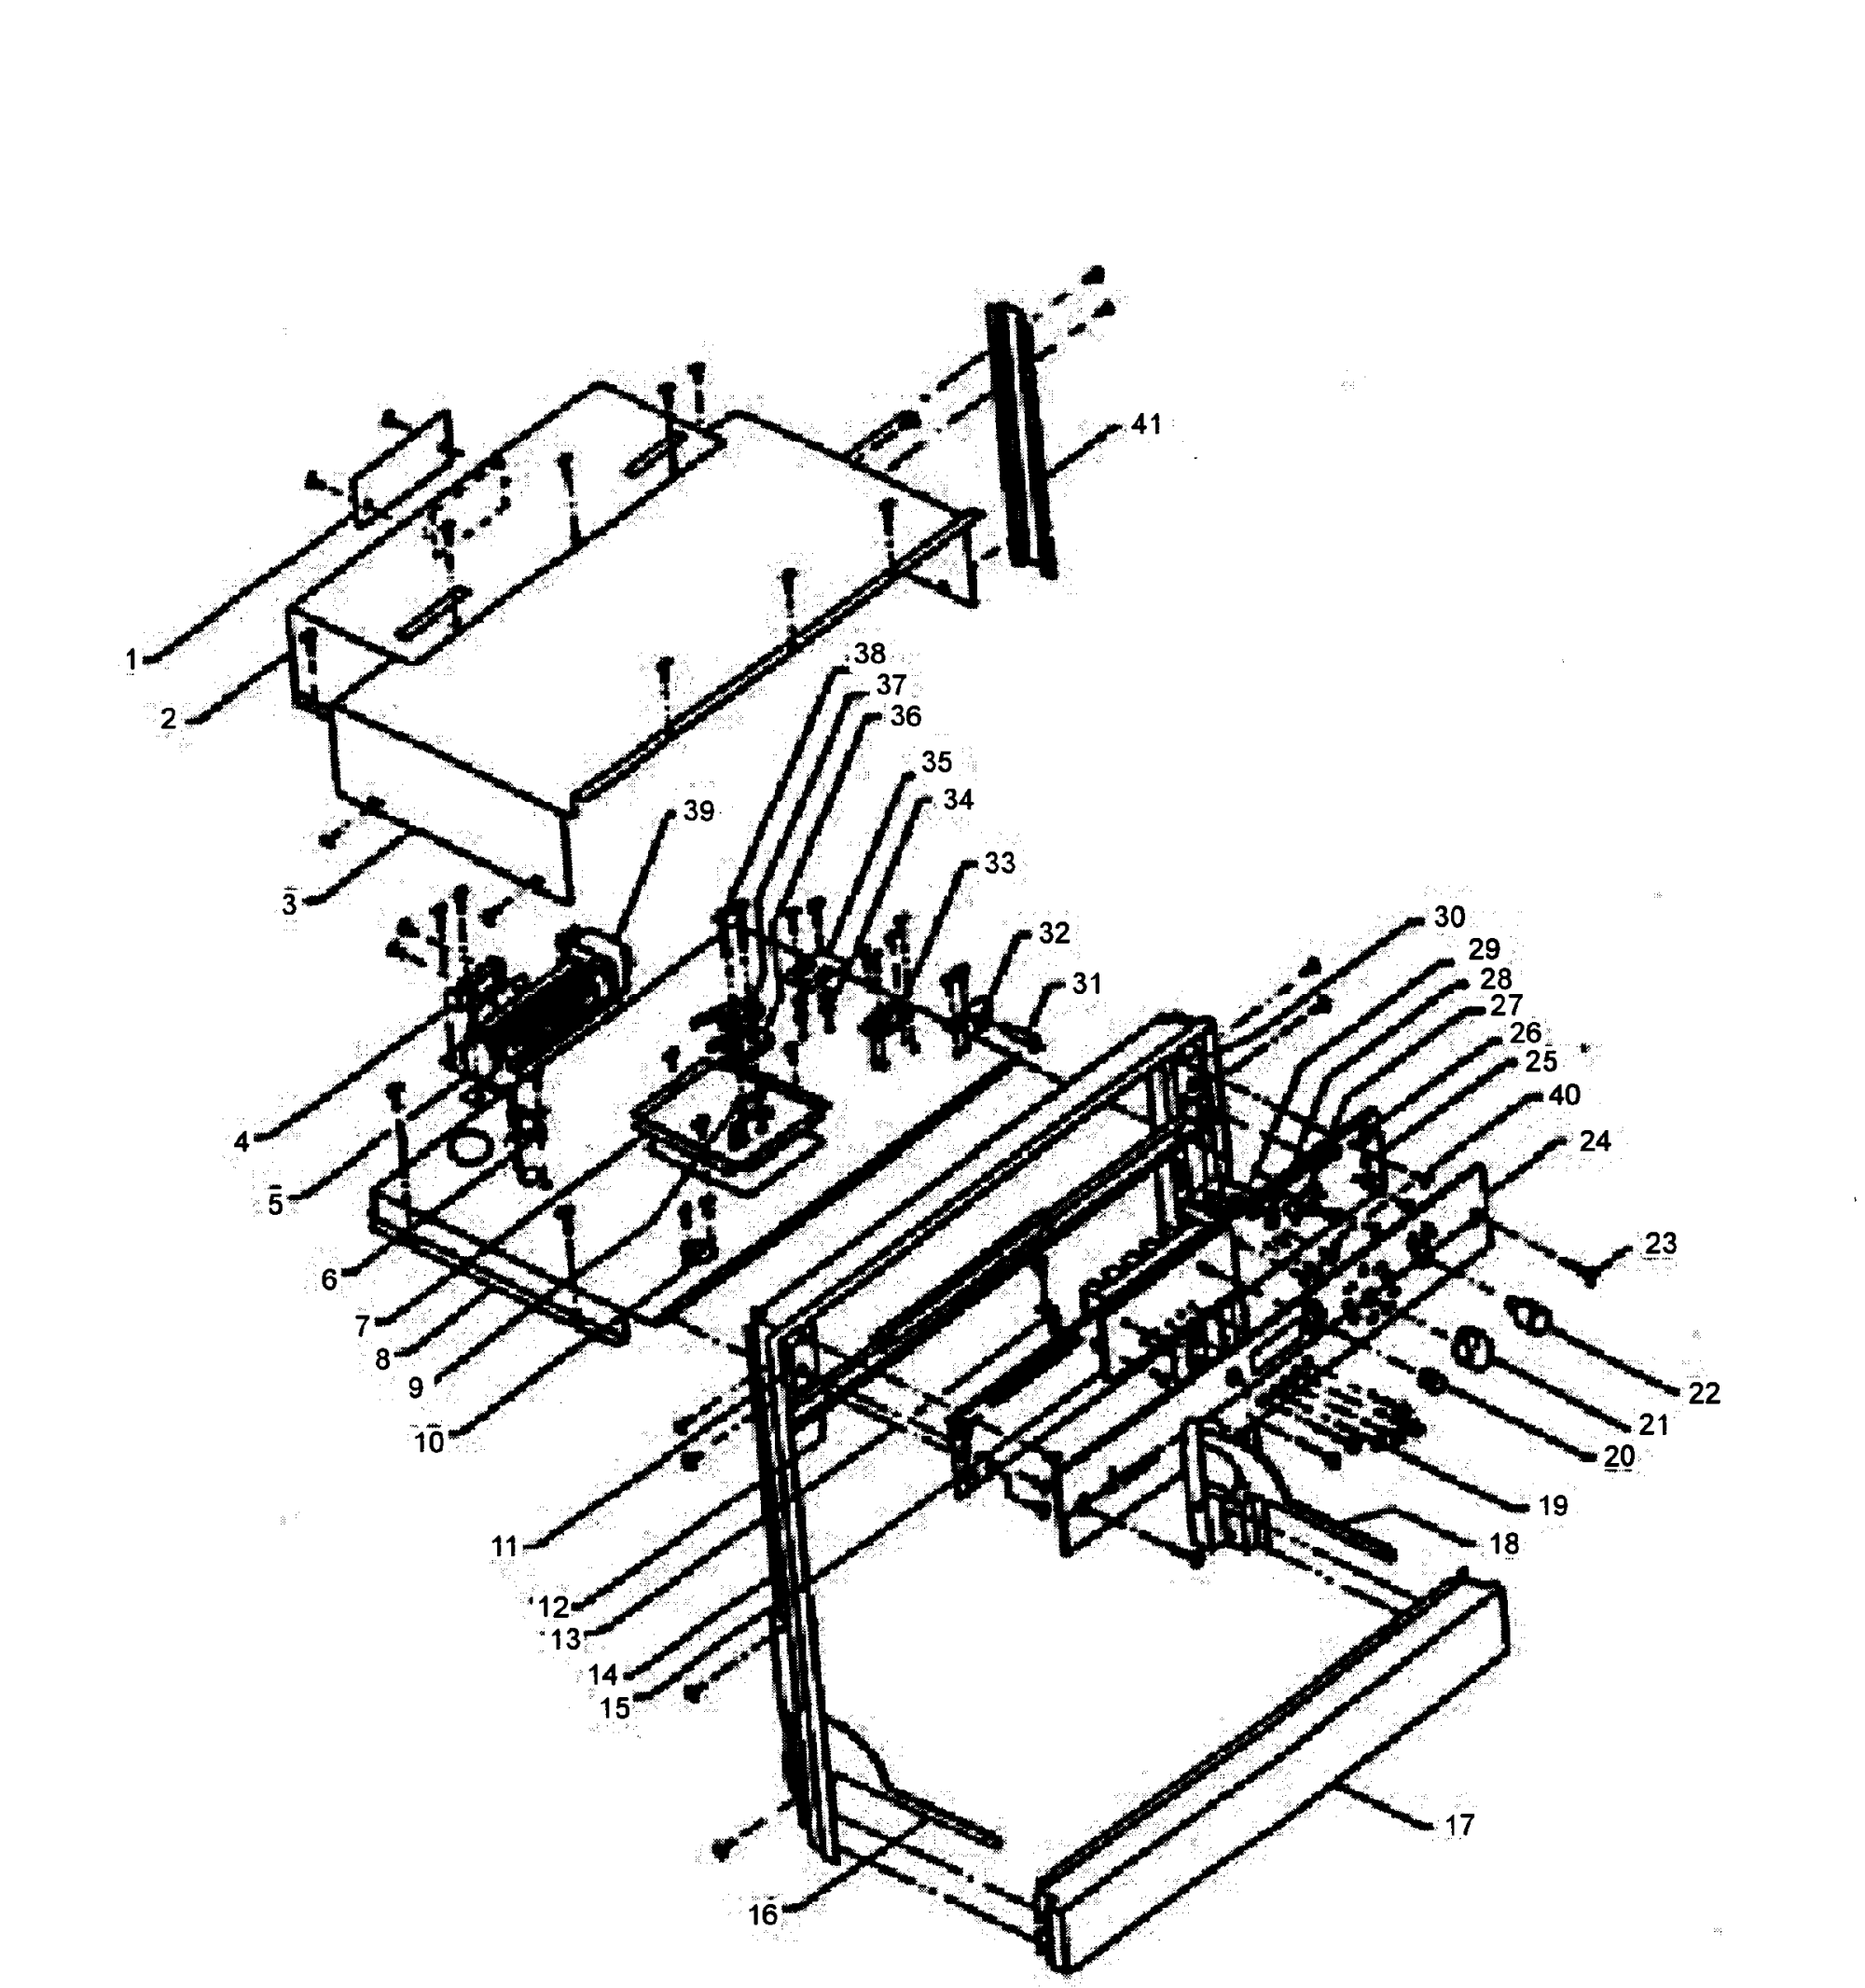 hight resolution of w305 oven trim chassis parts diagram